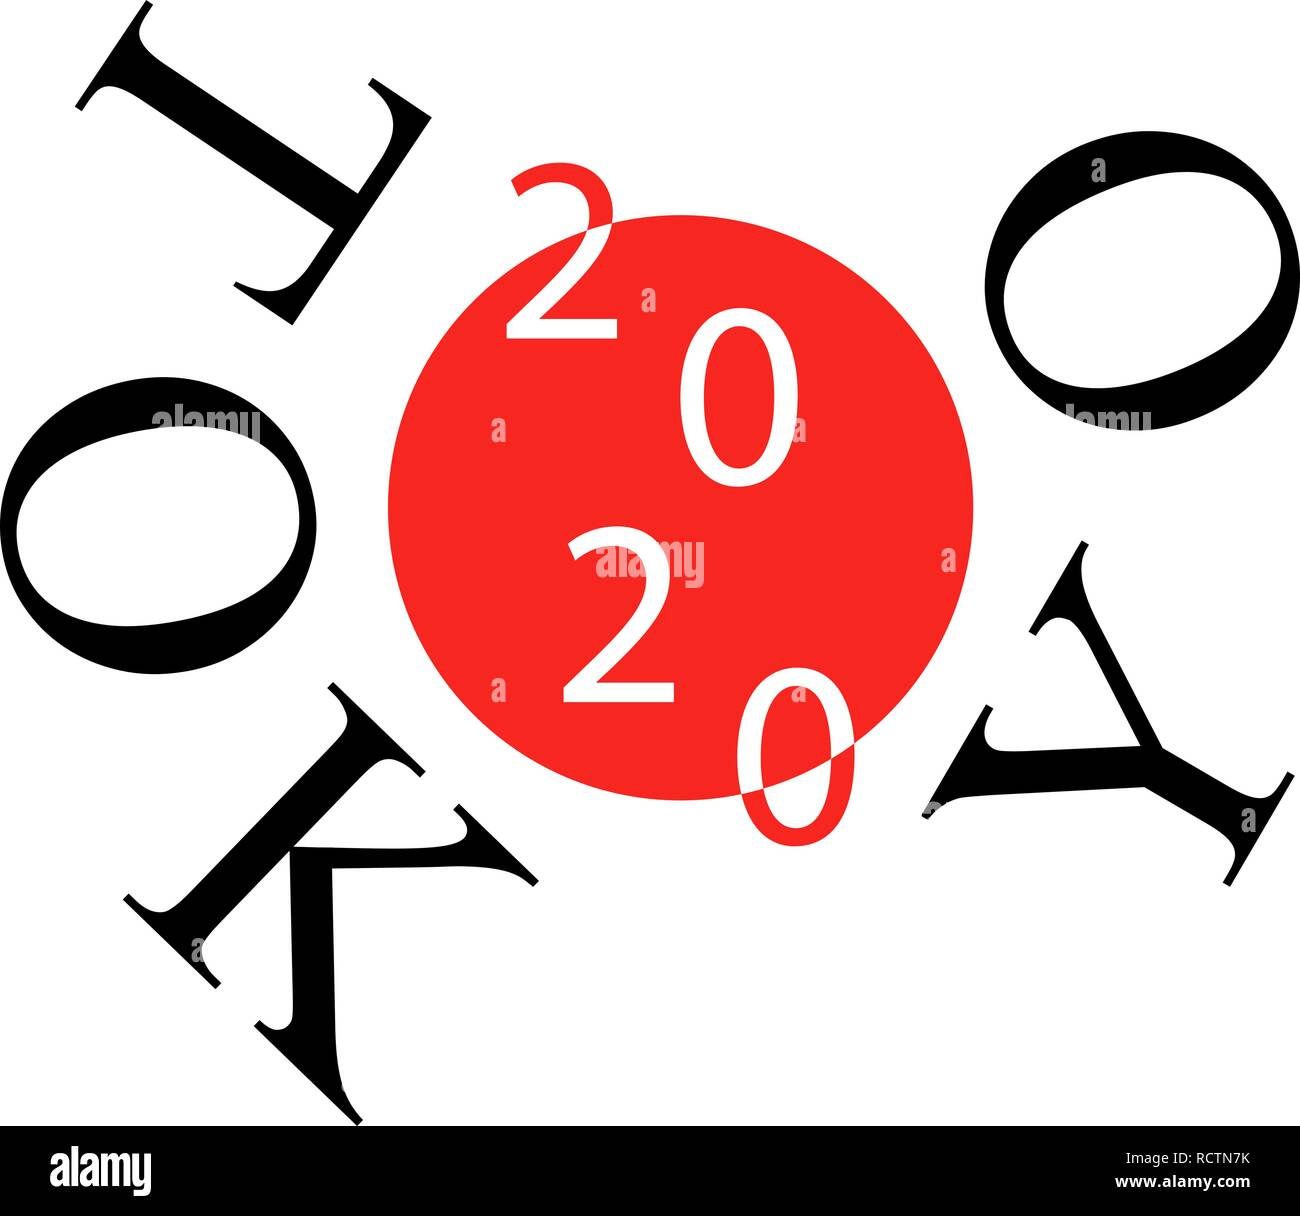 2020 on japanese flag, illustration for the summer games of 2020. Olympic games in Tokyo. - Stock Vector